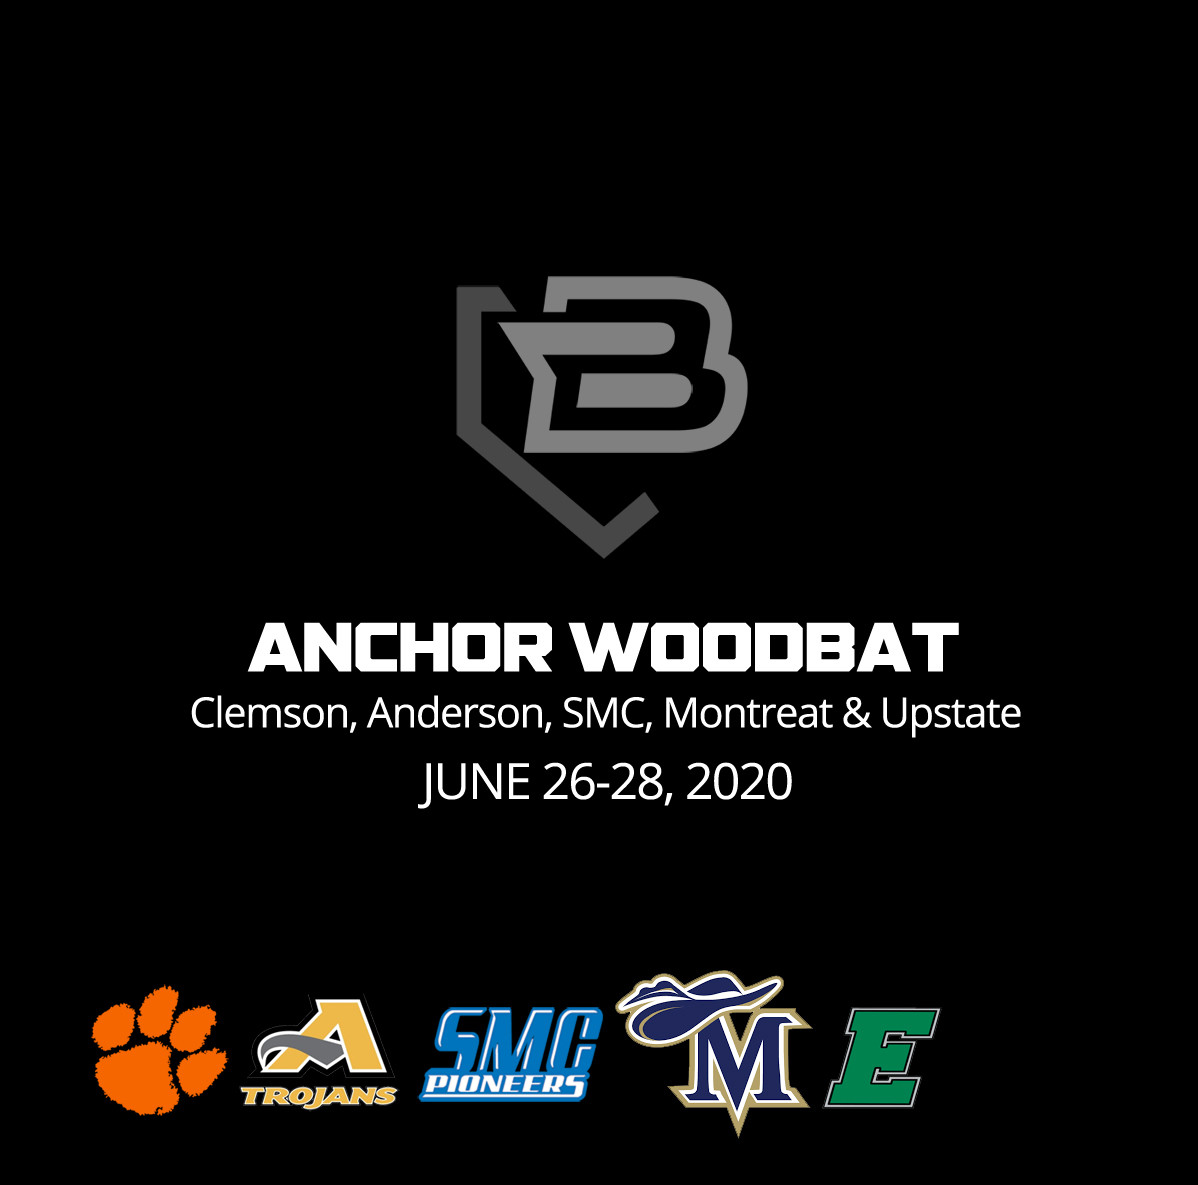 Anchor Woodbat